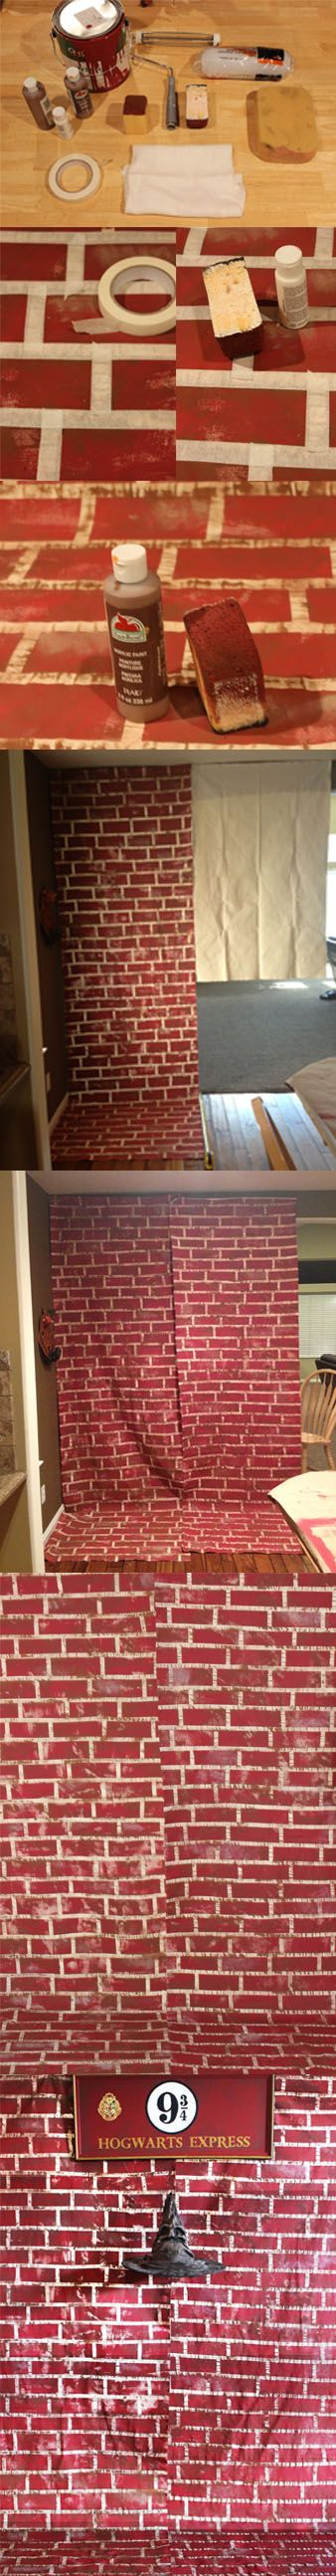 DIY Harry Potter Platform 9 3/4 Brick Wall. Cool if my kids ever want a Harry potter party